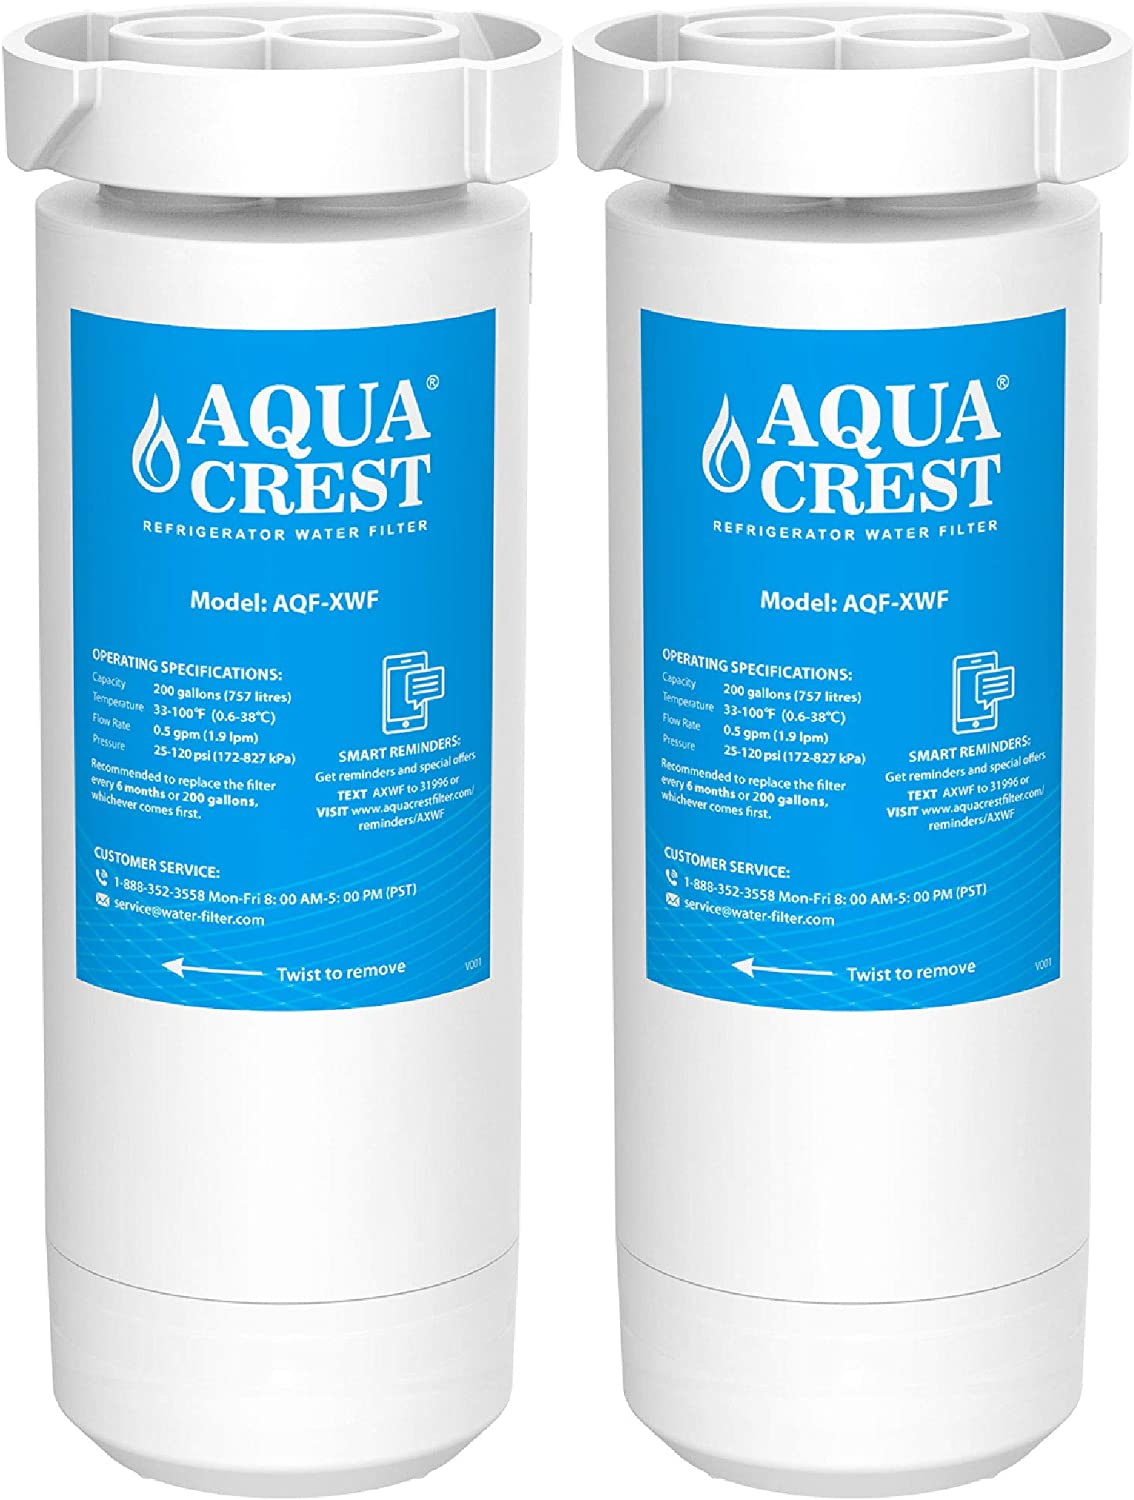 AQUACREST XWF Refrigerator Water Filter, GE Refrigerator Models Starting with GBE21, GDE21, GDE25, GFE24, GFE26, GNE21, GNE25, GNE27, GWE19, GYE18, GSE25, GSS23, GSS25, GZS22, PSE25, CZS22 (Pack of 2)